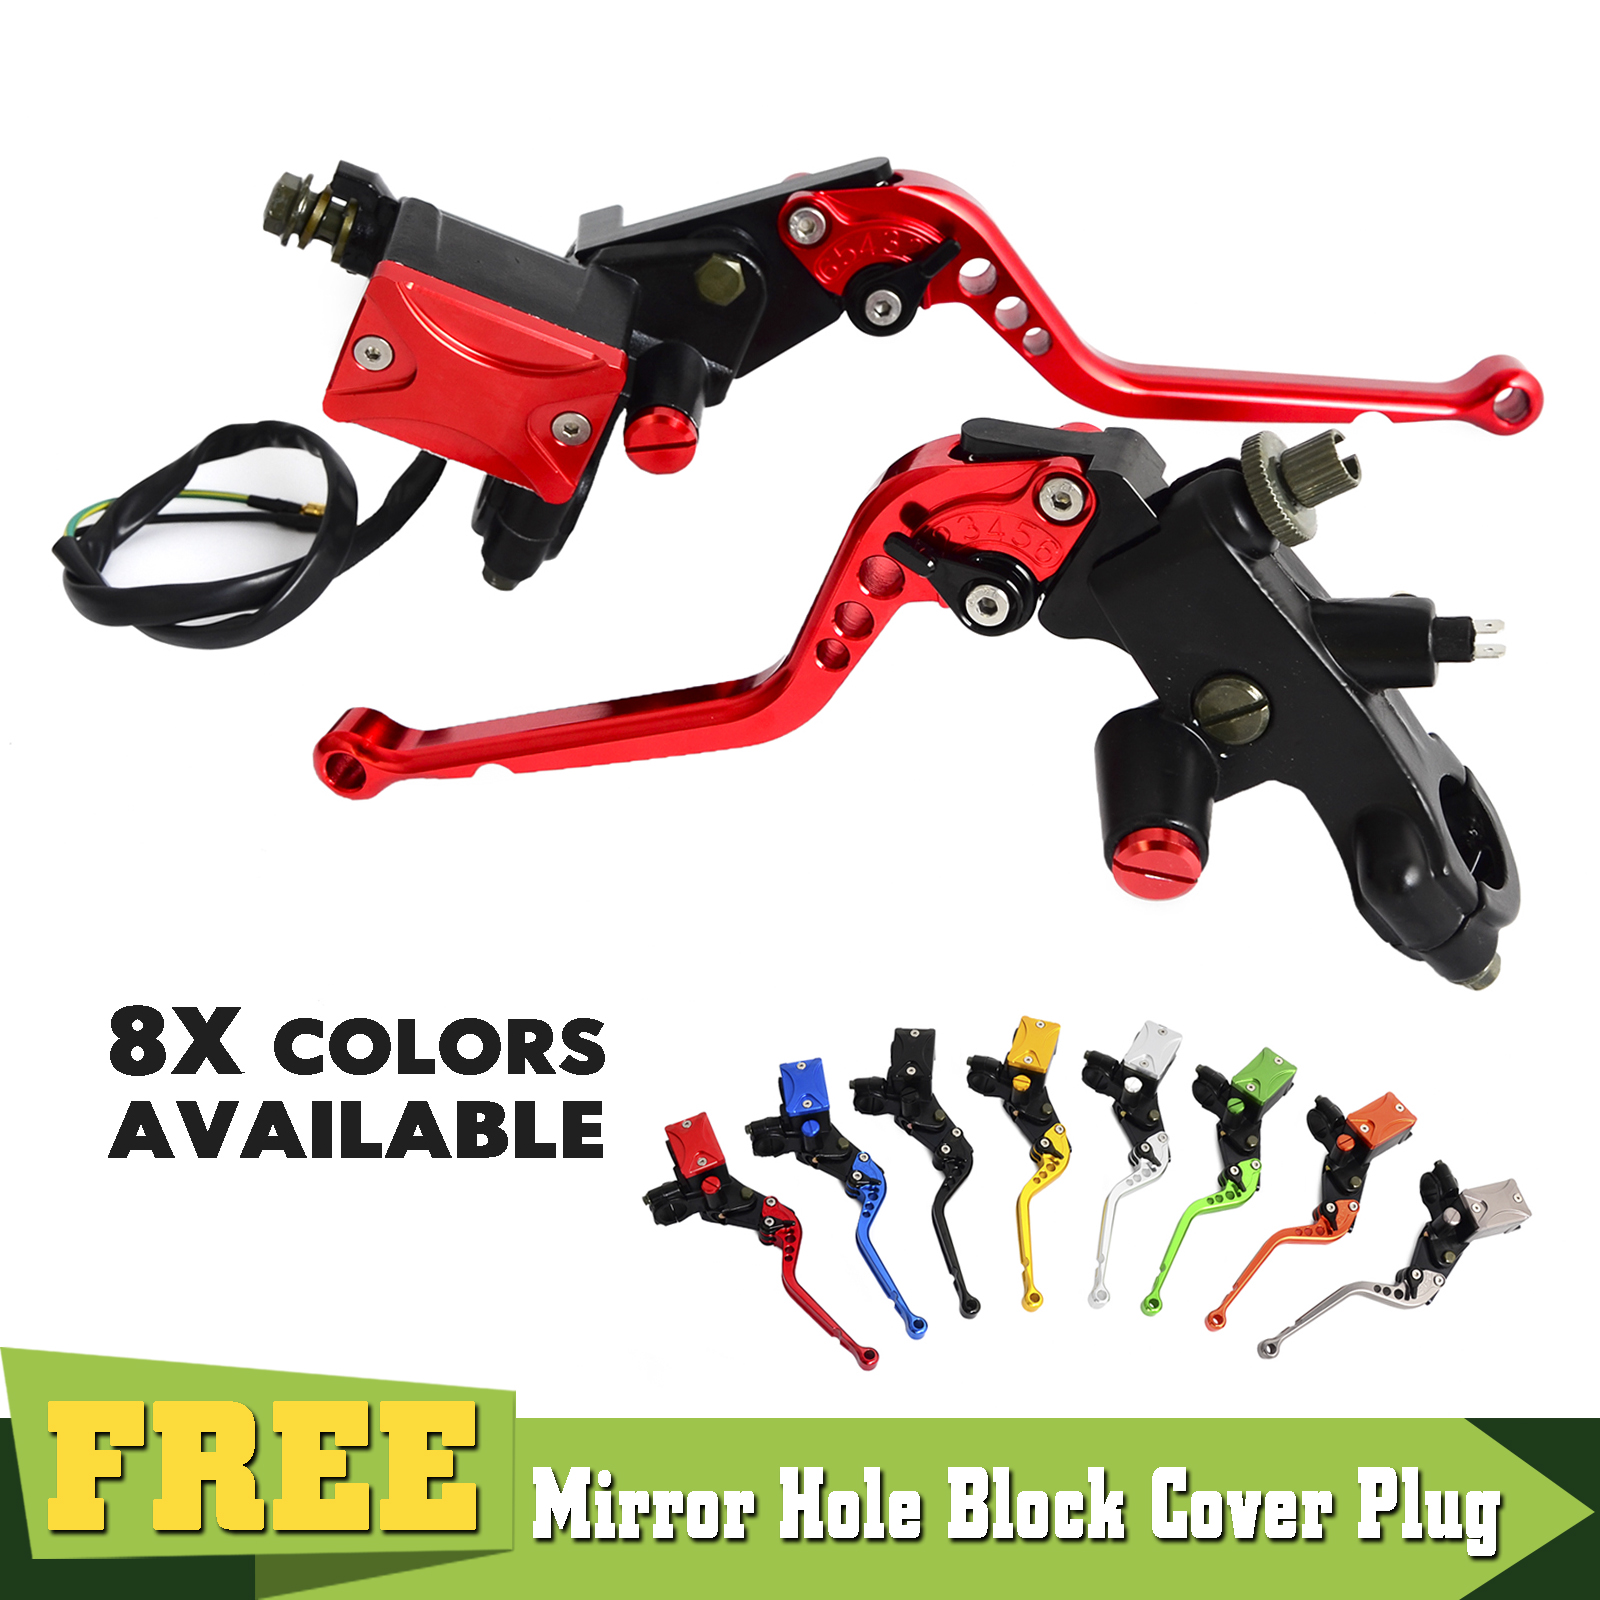 """Motorcycle 7/8"""" Brake Clutch Lever Master Cylinder Set Kit For Honda CR80R 85R 125R 250R CRF250 CRF450 150 230F 450R XR250 400-in Levers, Ropes & Cables from Automobiles & Motorcycles    1"""